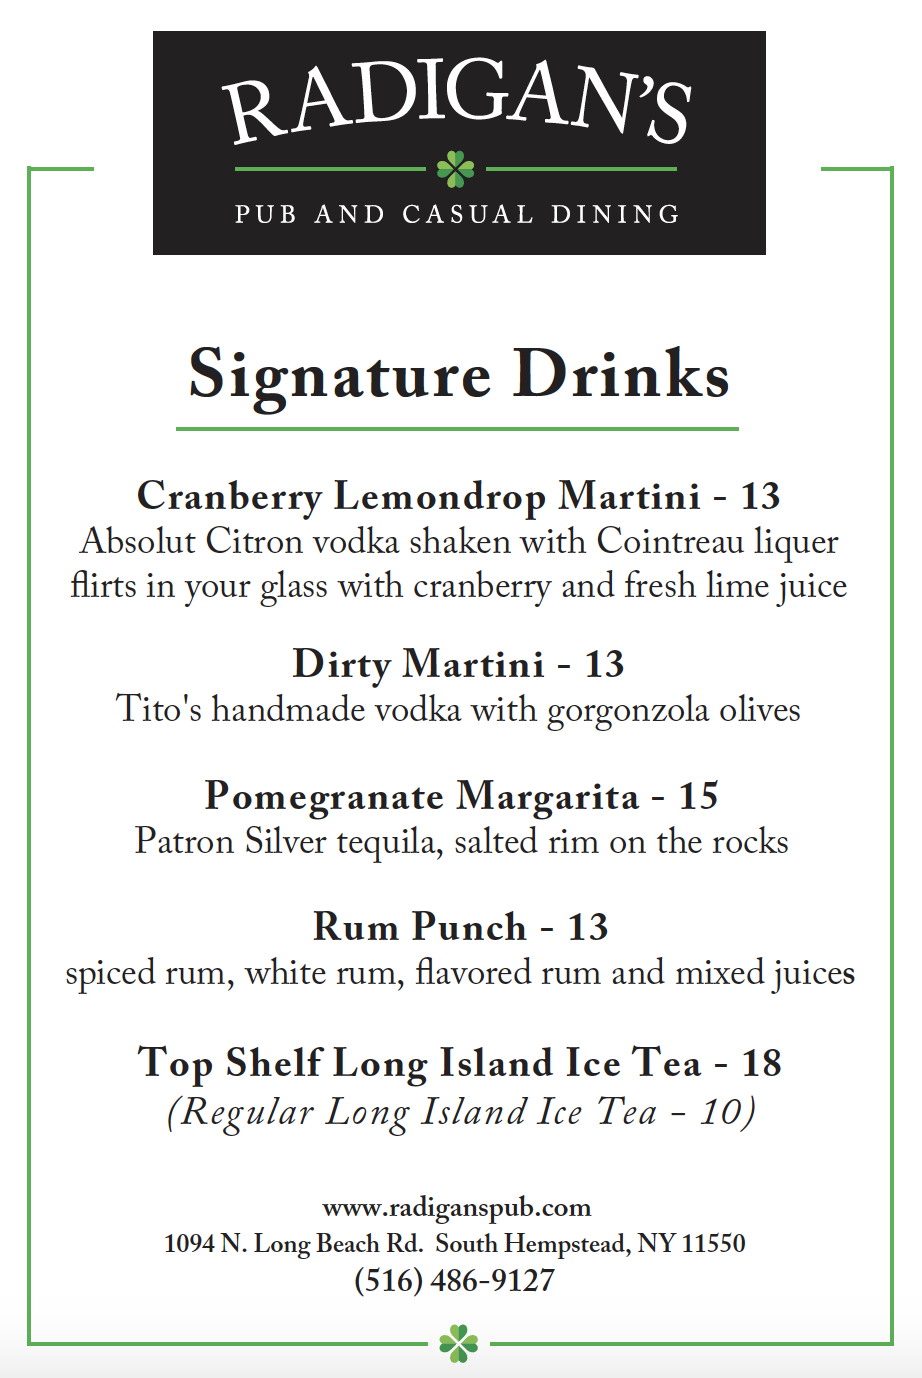 Signature Drinks Menu